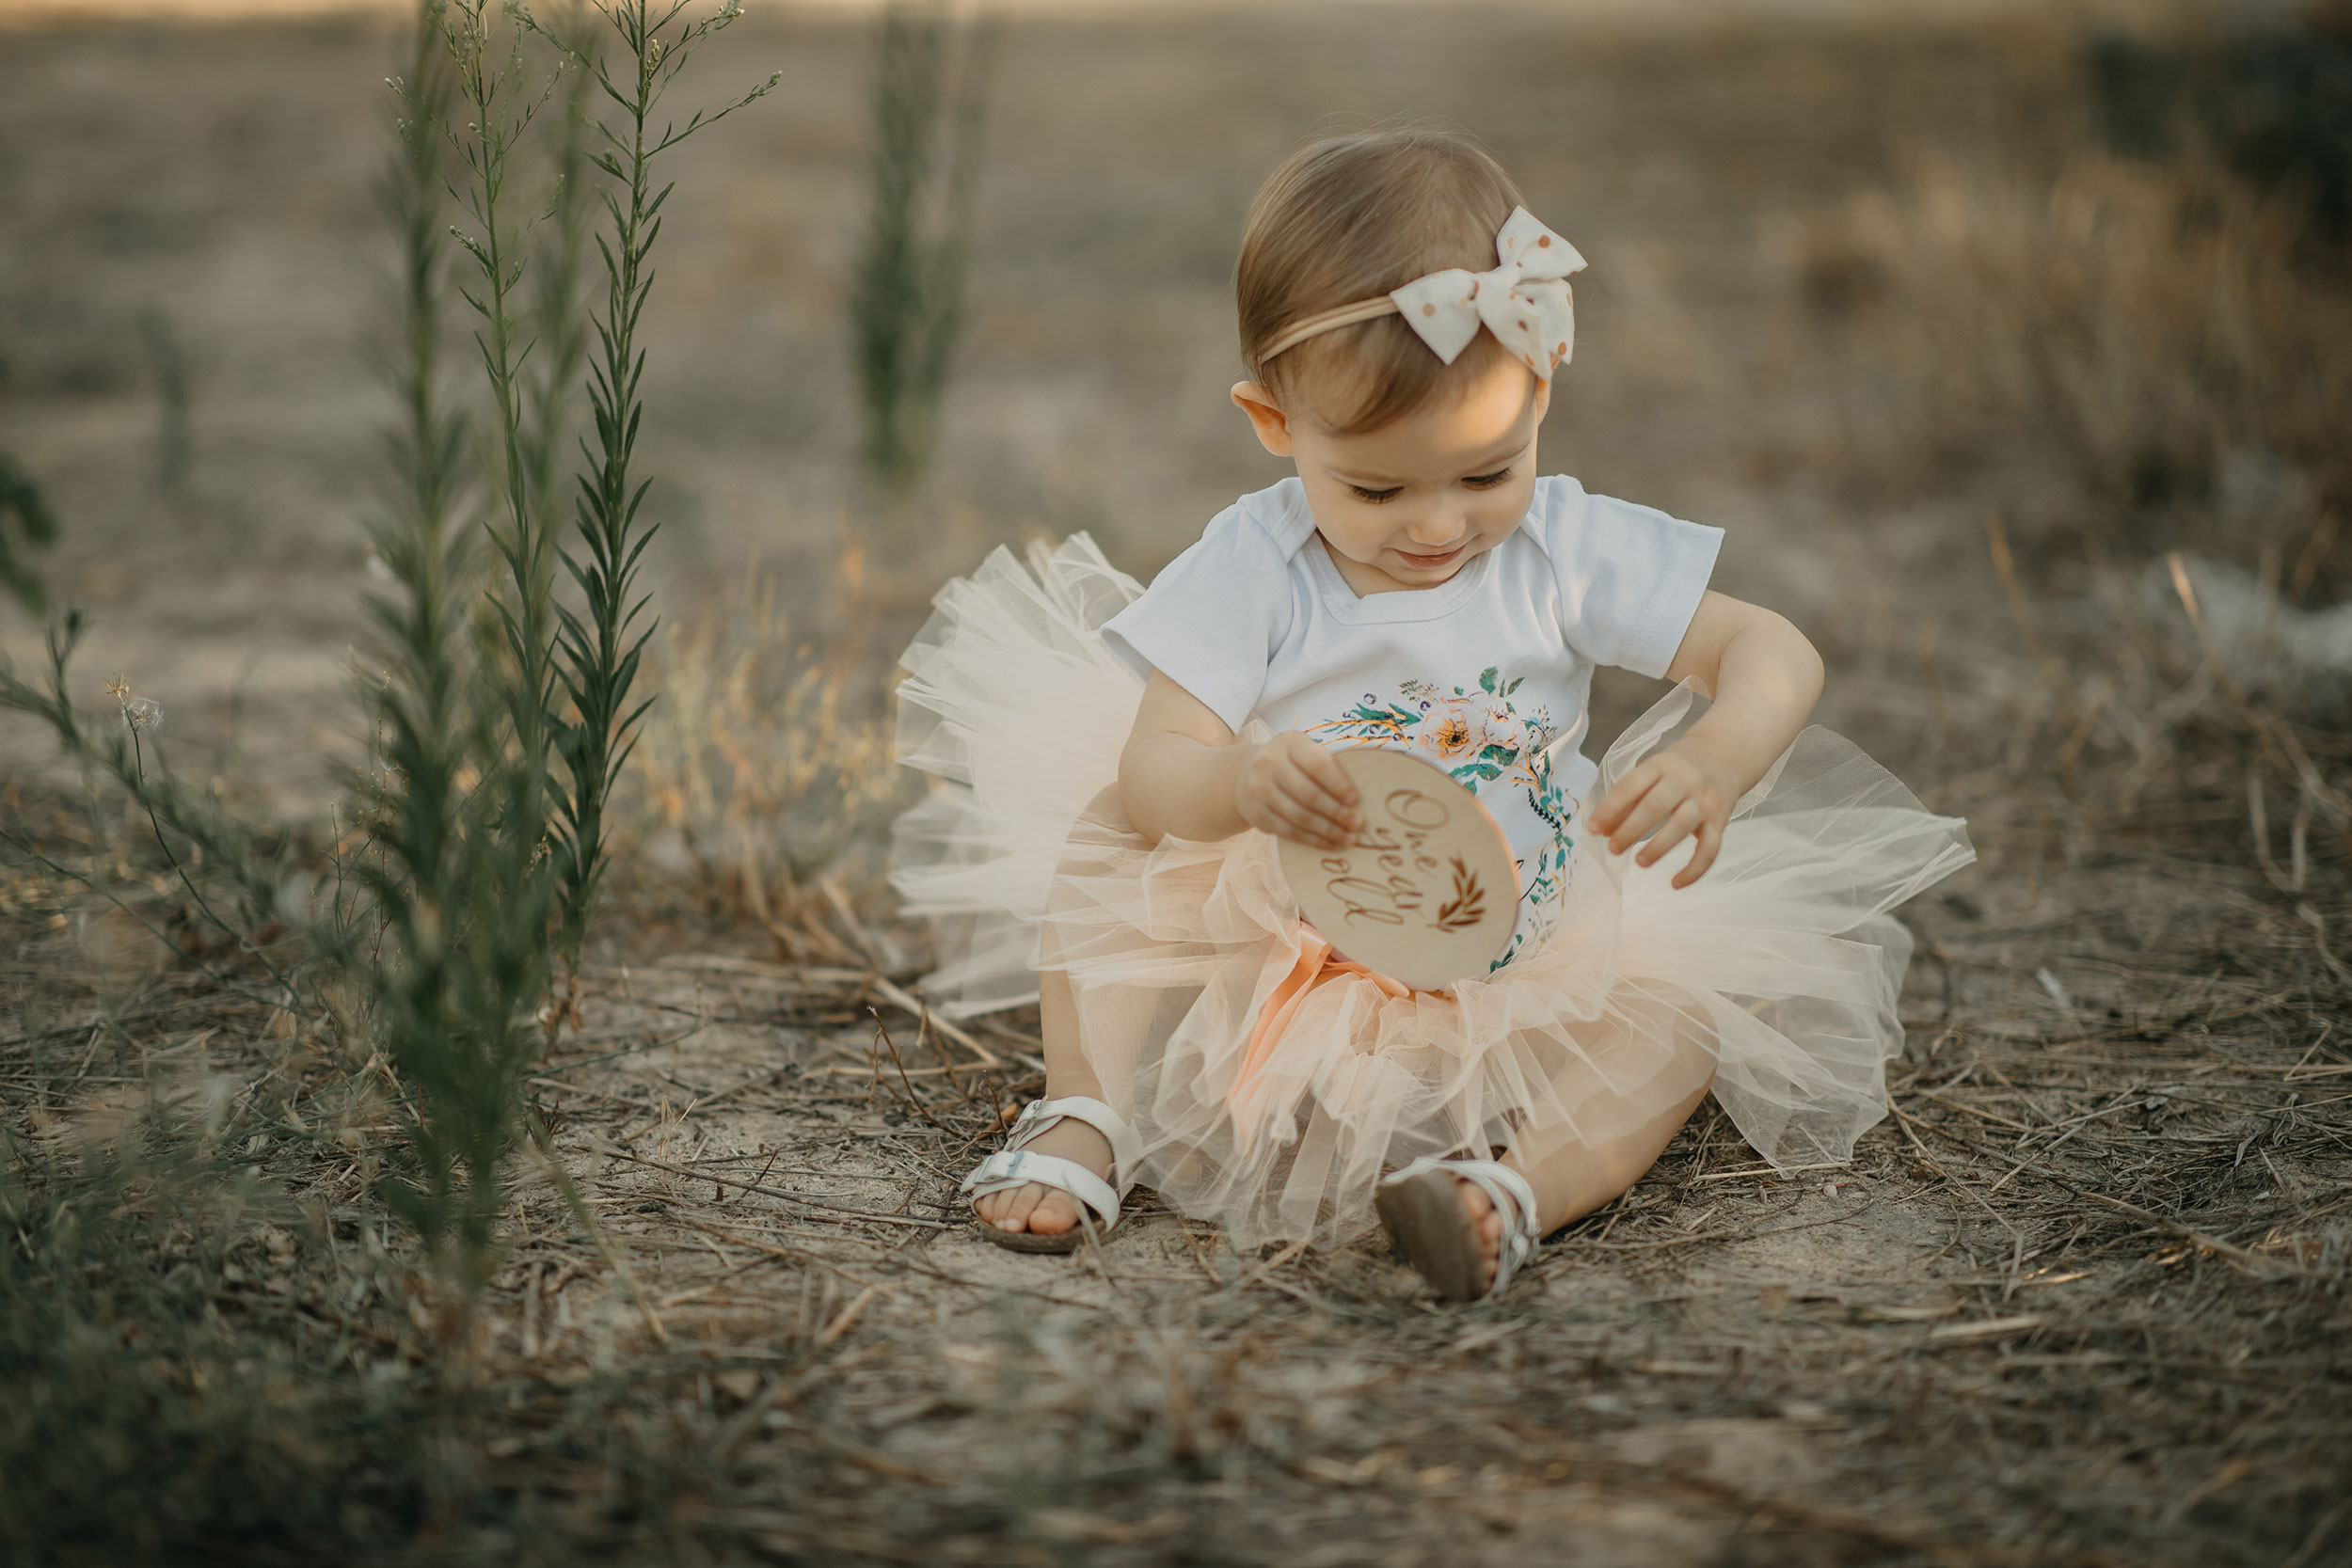 Beautiful baby playing during the photoshoot